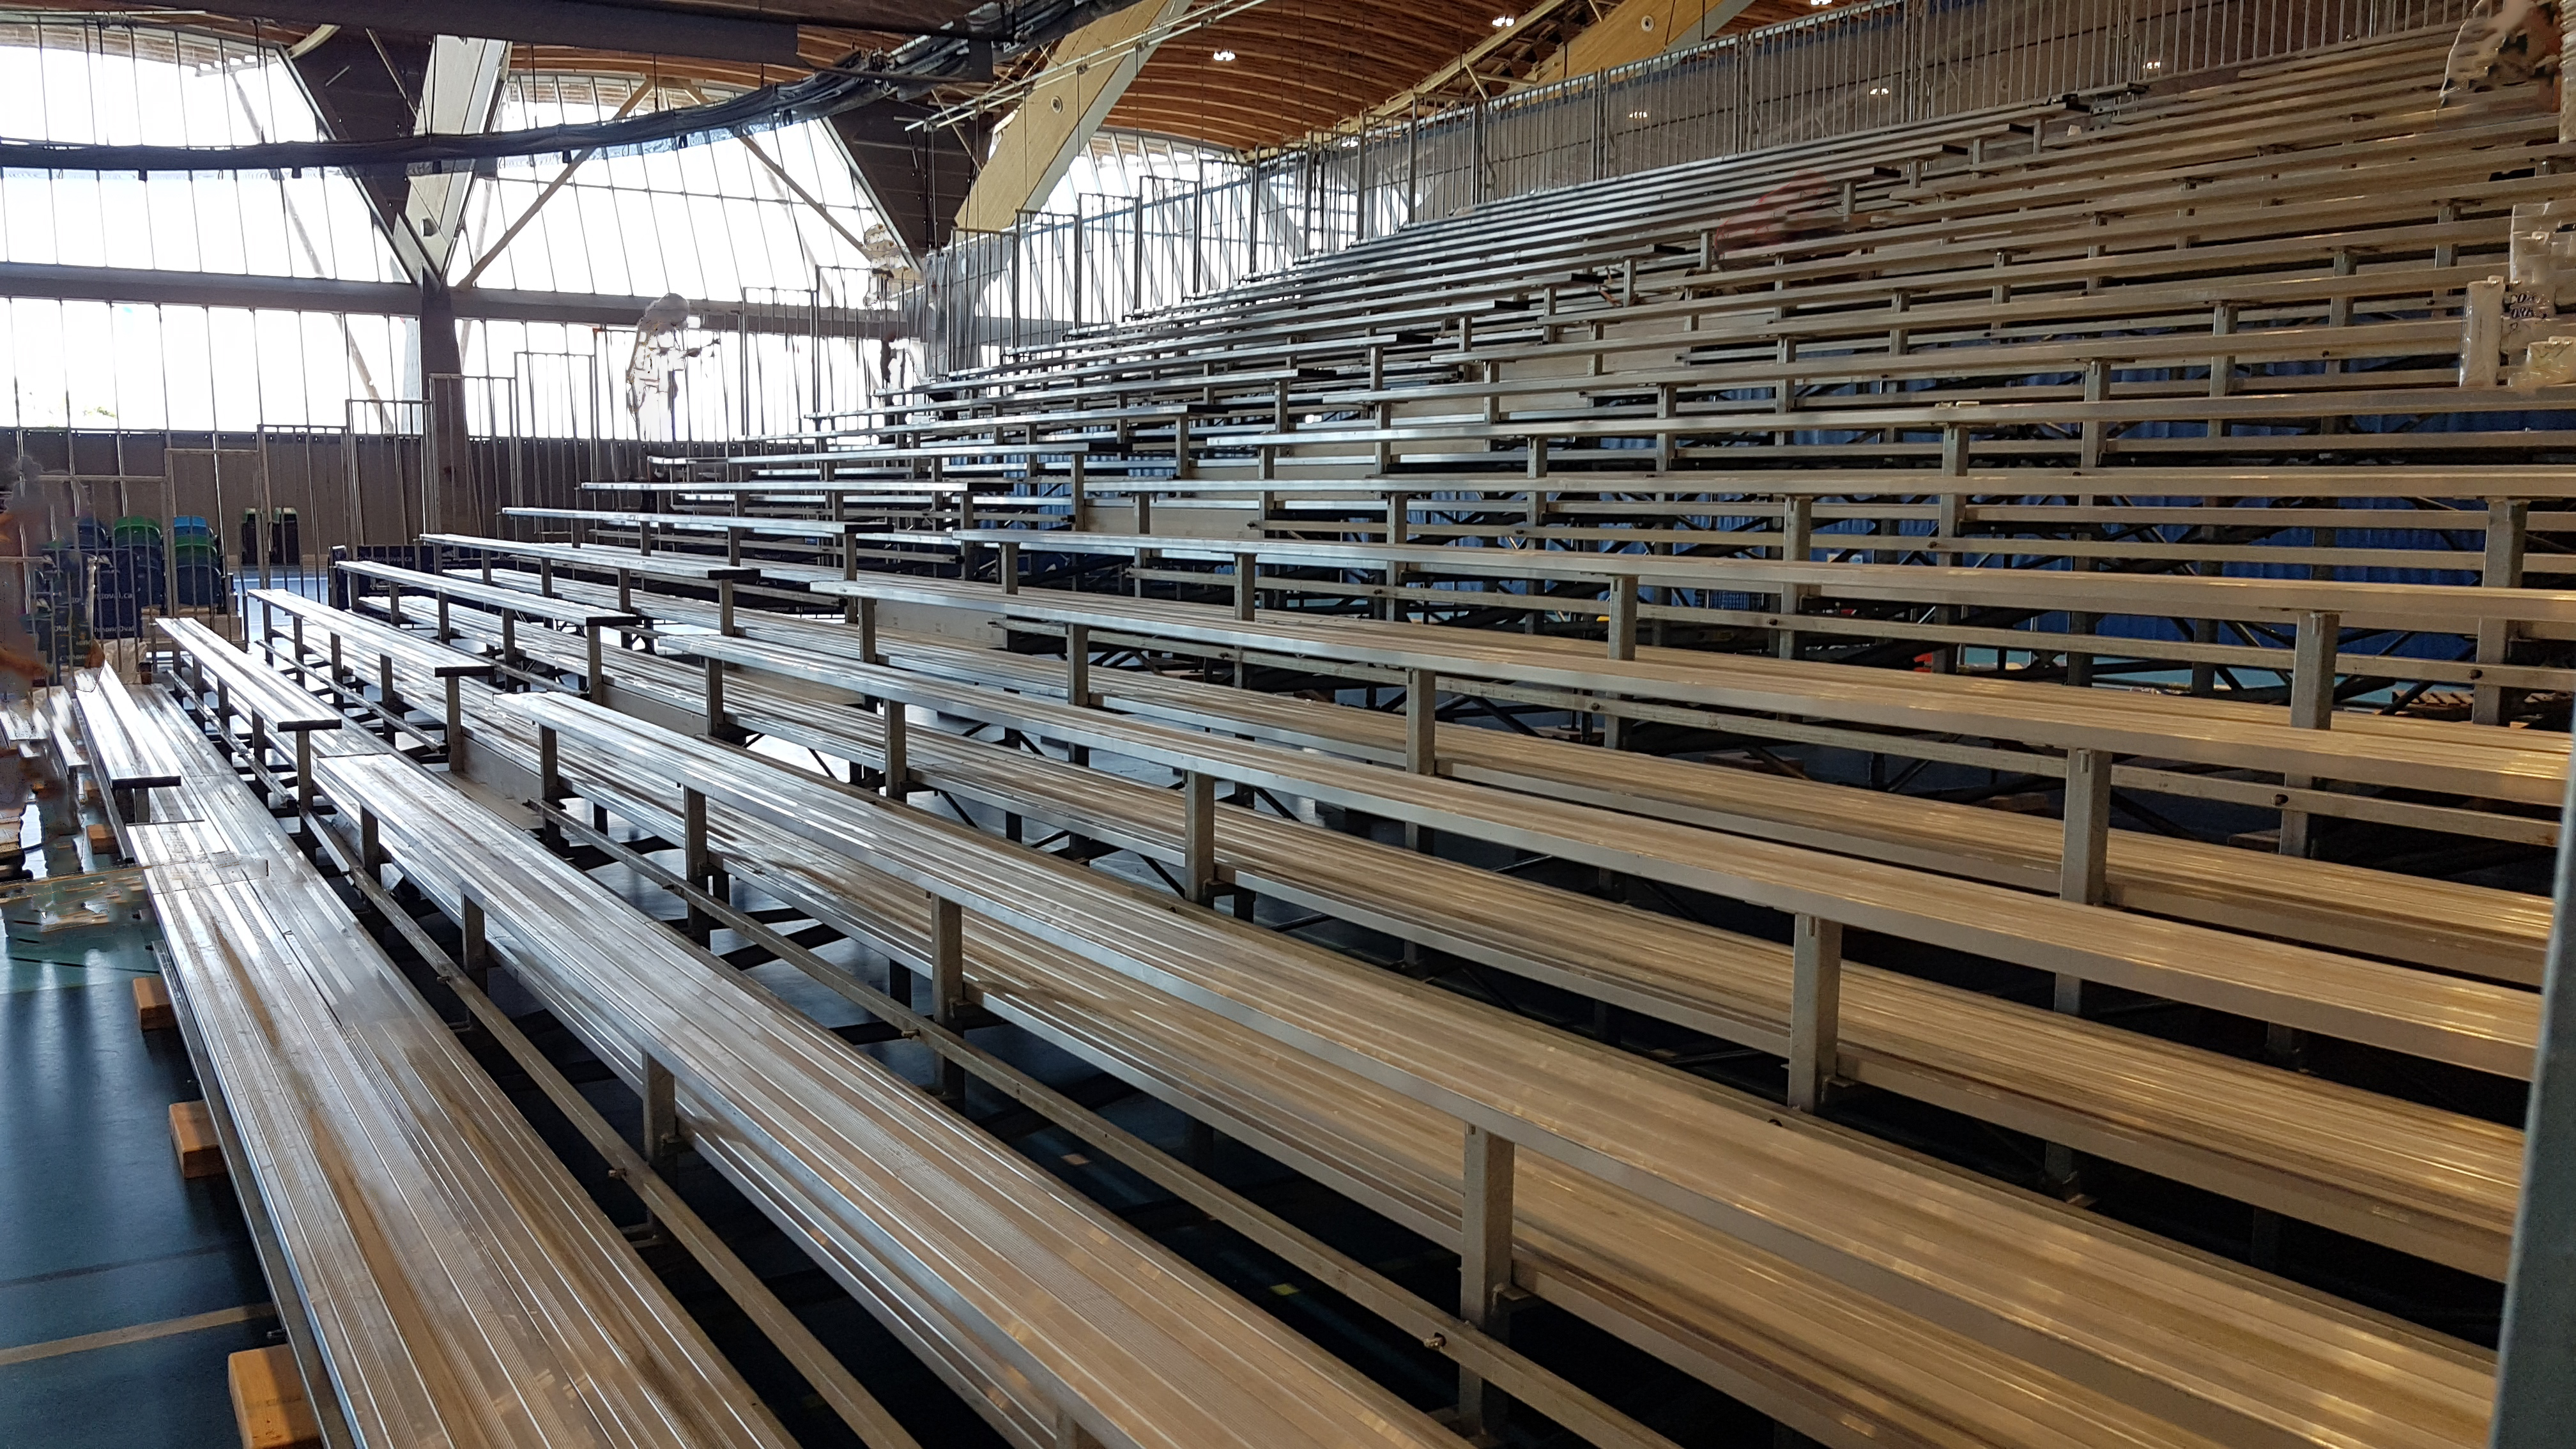 Bleachers Concerts Sporting Corporate Events Canada